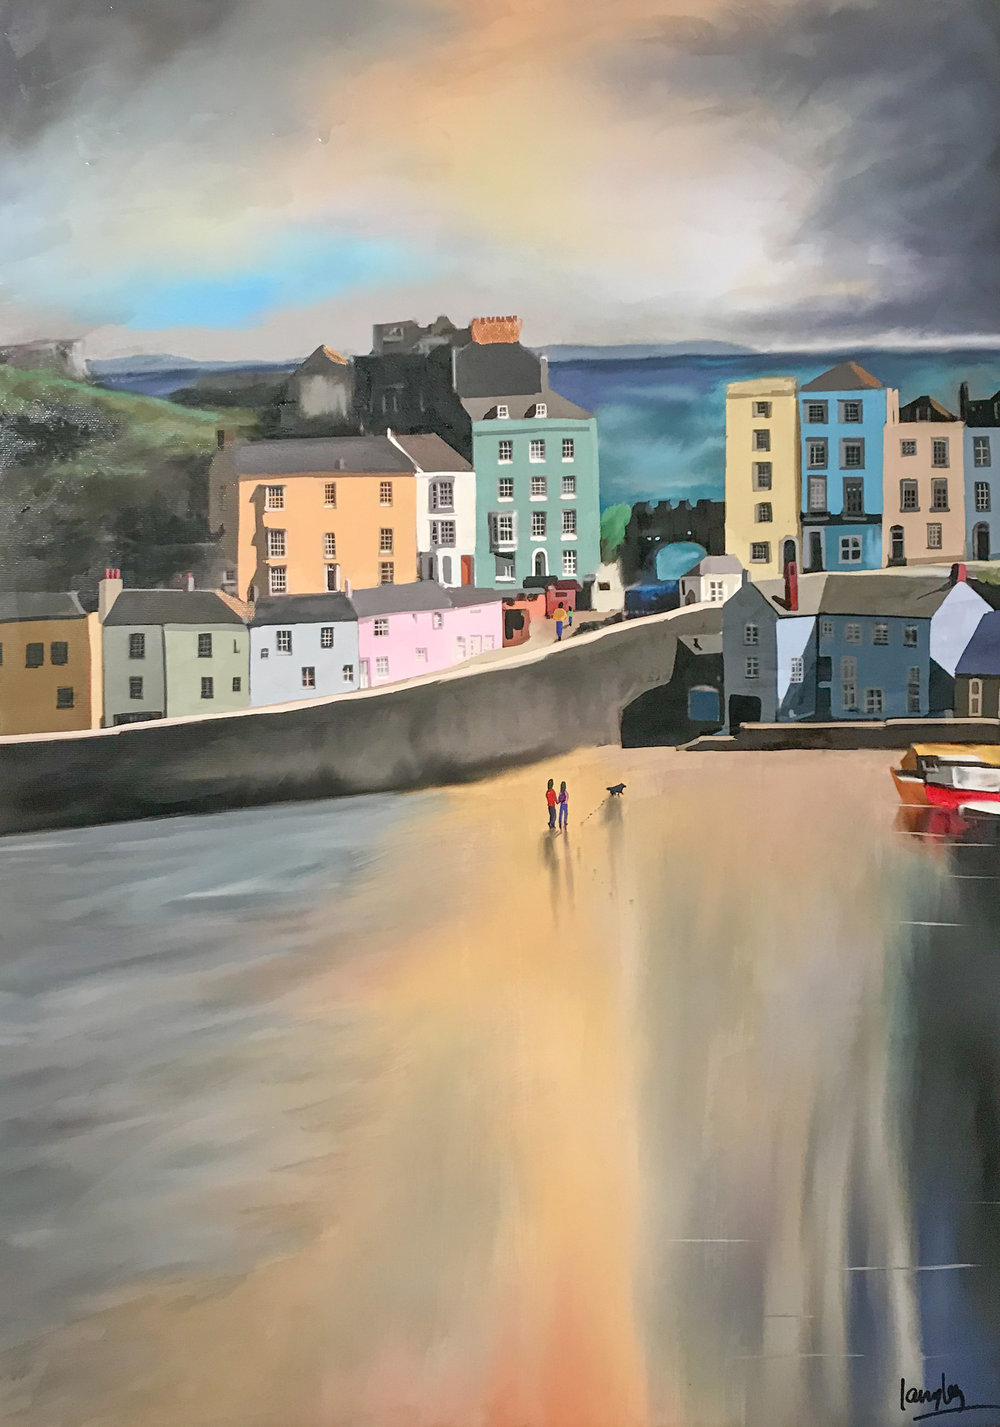 Title Colured Houses of Tenby  Media Master Canvas Print hand finished with acrylic and varnishes. Sise 16x23%22 Price £275.jpg